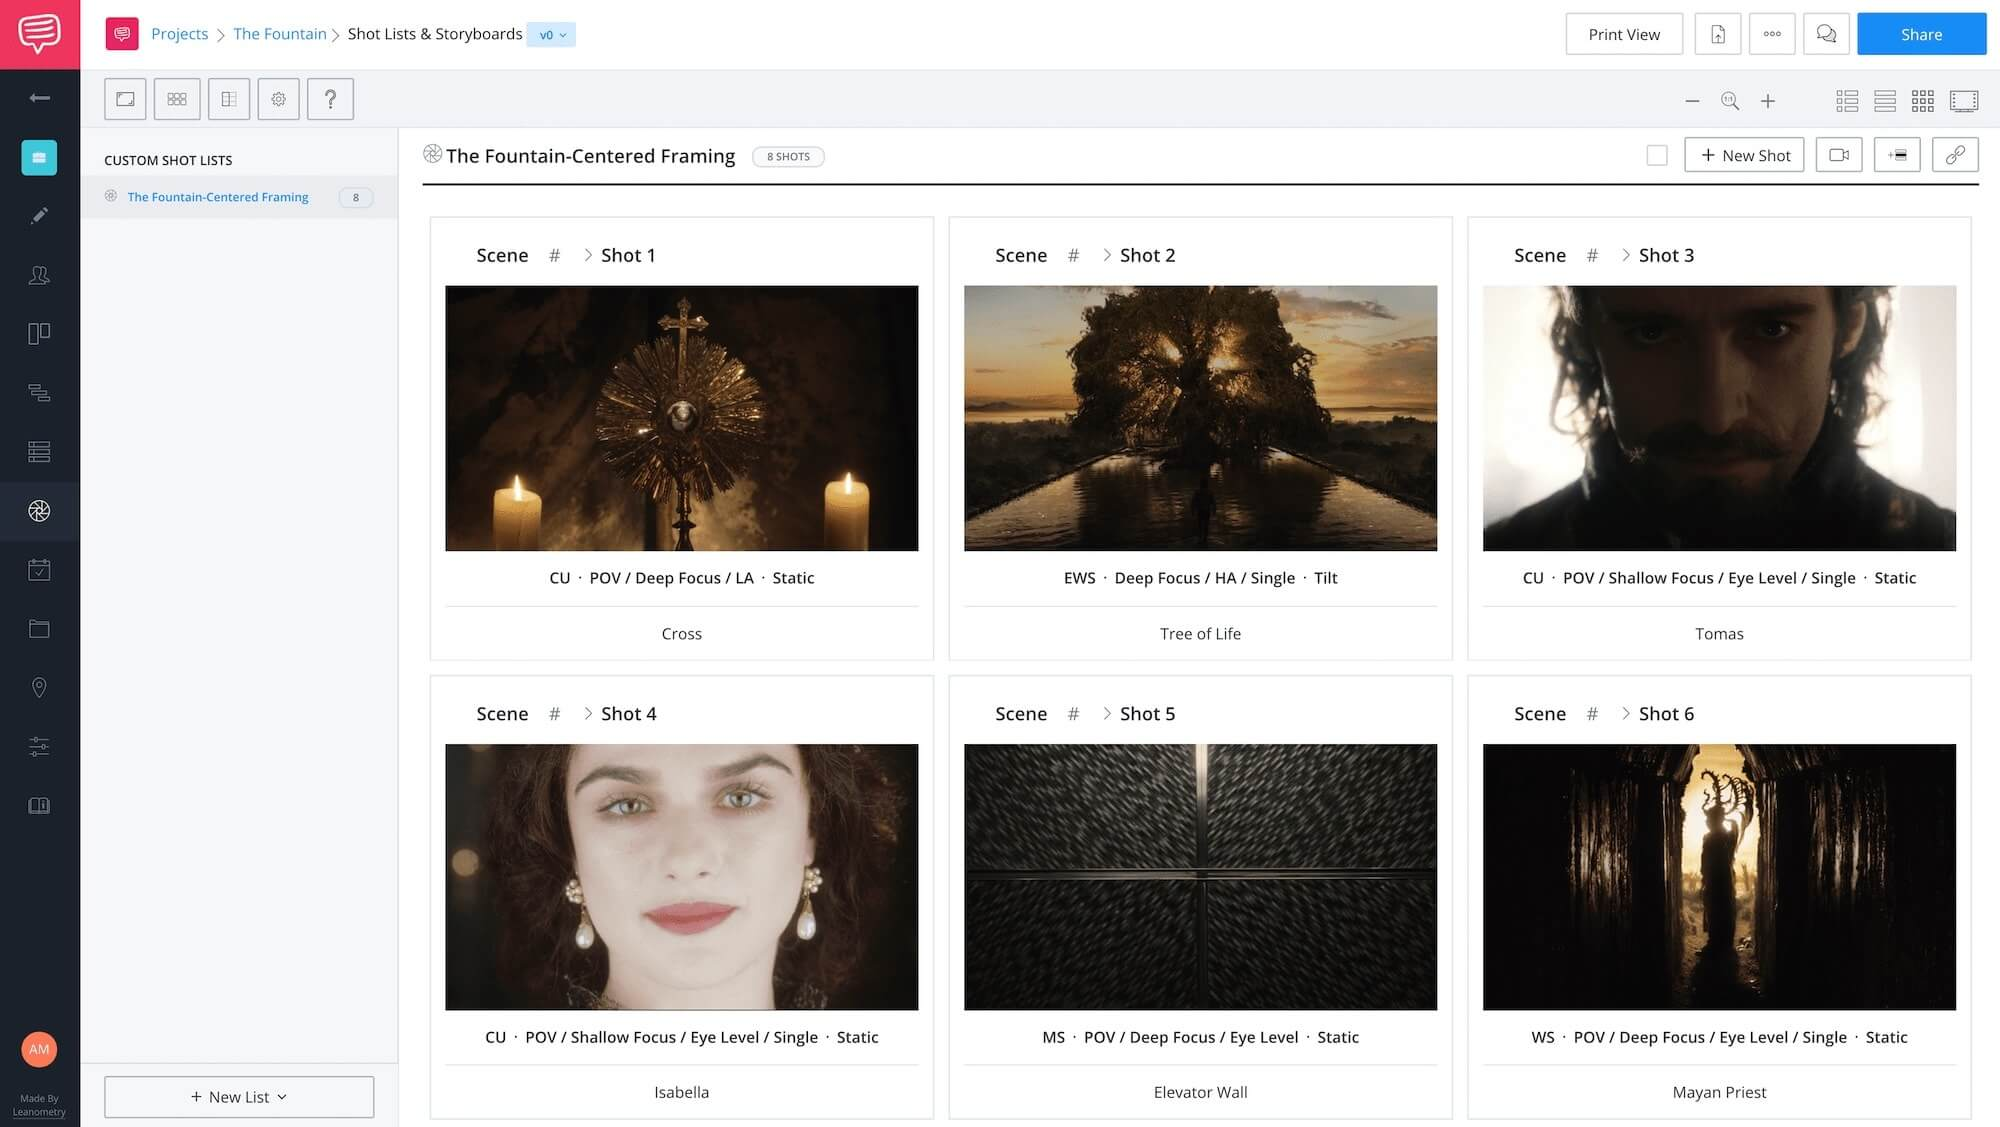 Darren Aronofsky Movies - The Fountain - StudioBinder Online Shot List Software